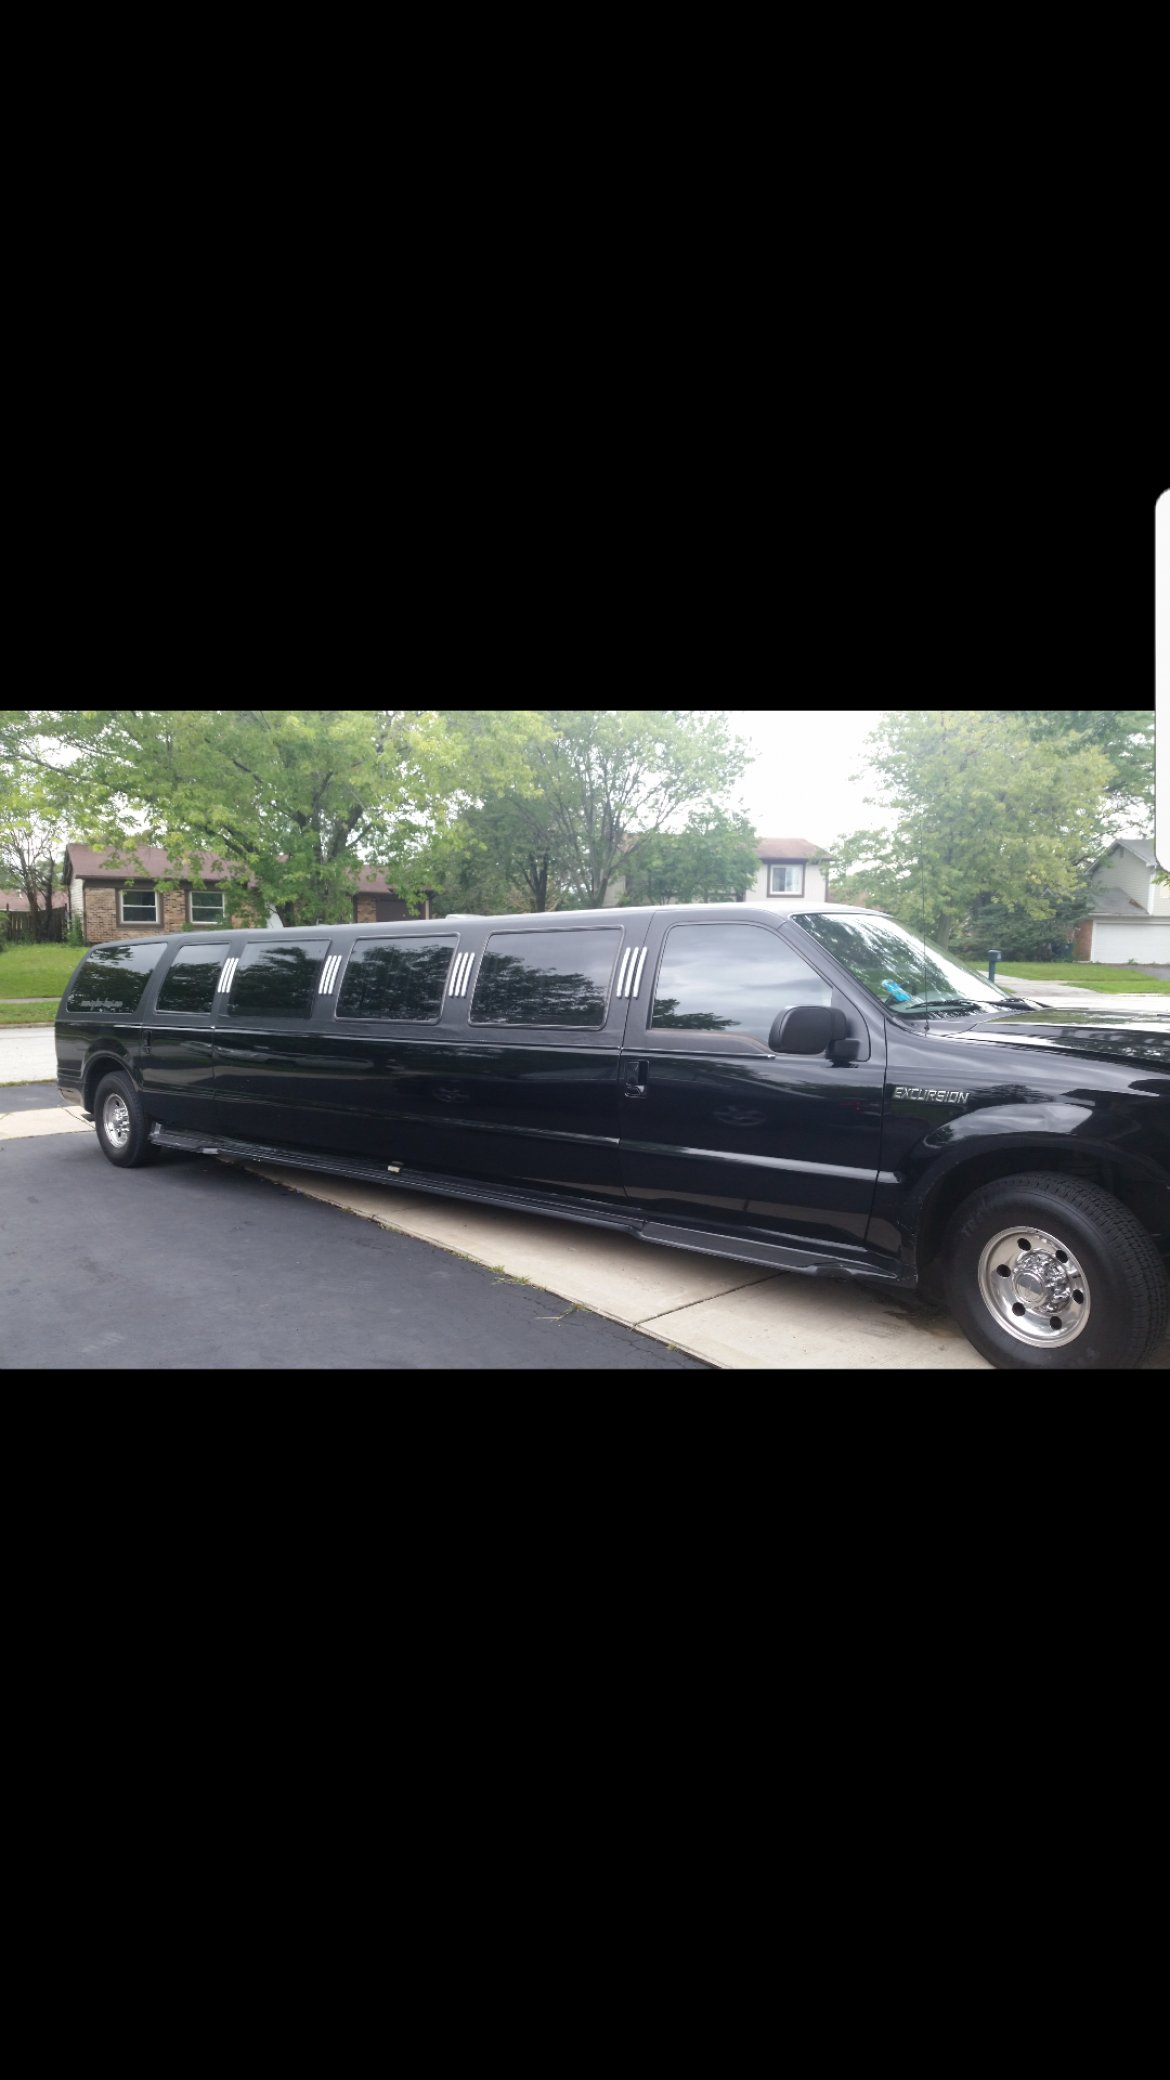 Limousine for sale: 2005 Ford Excursion 140""